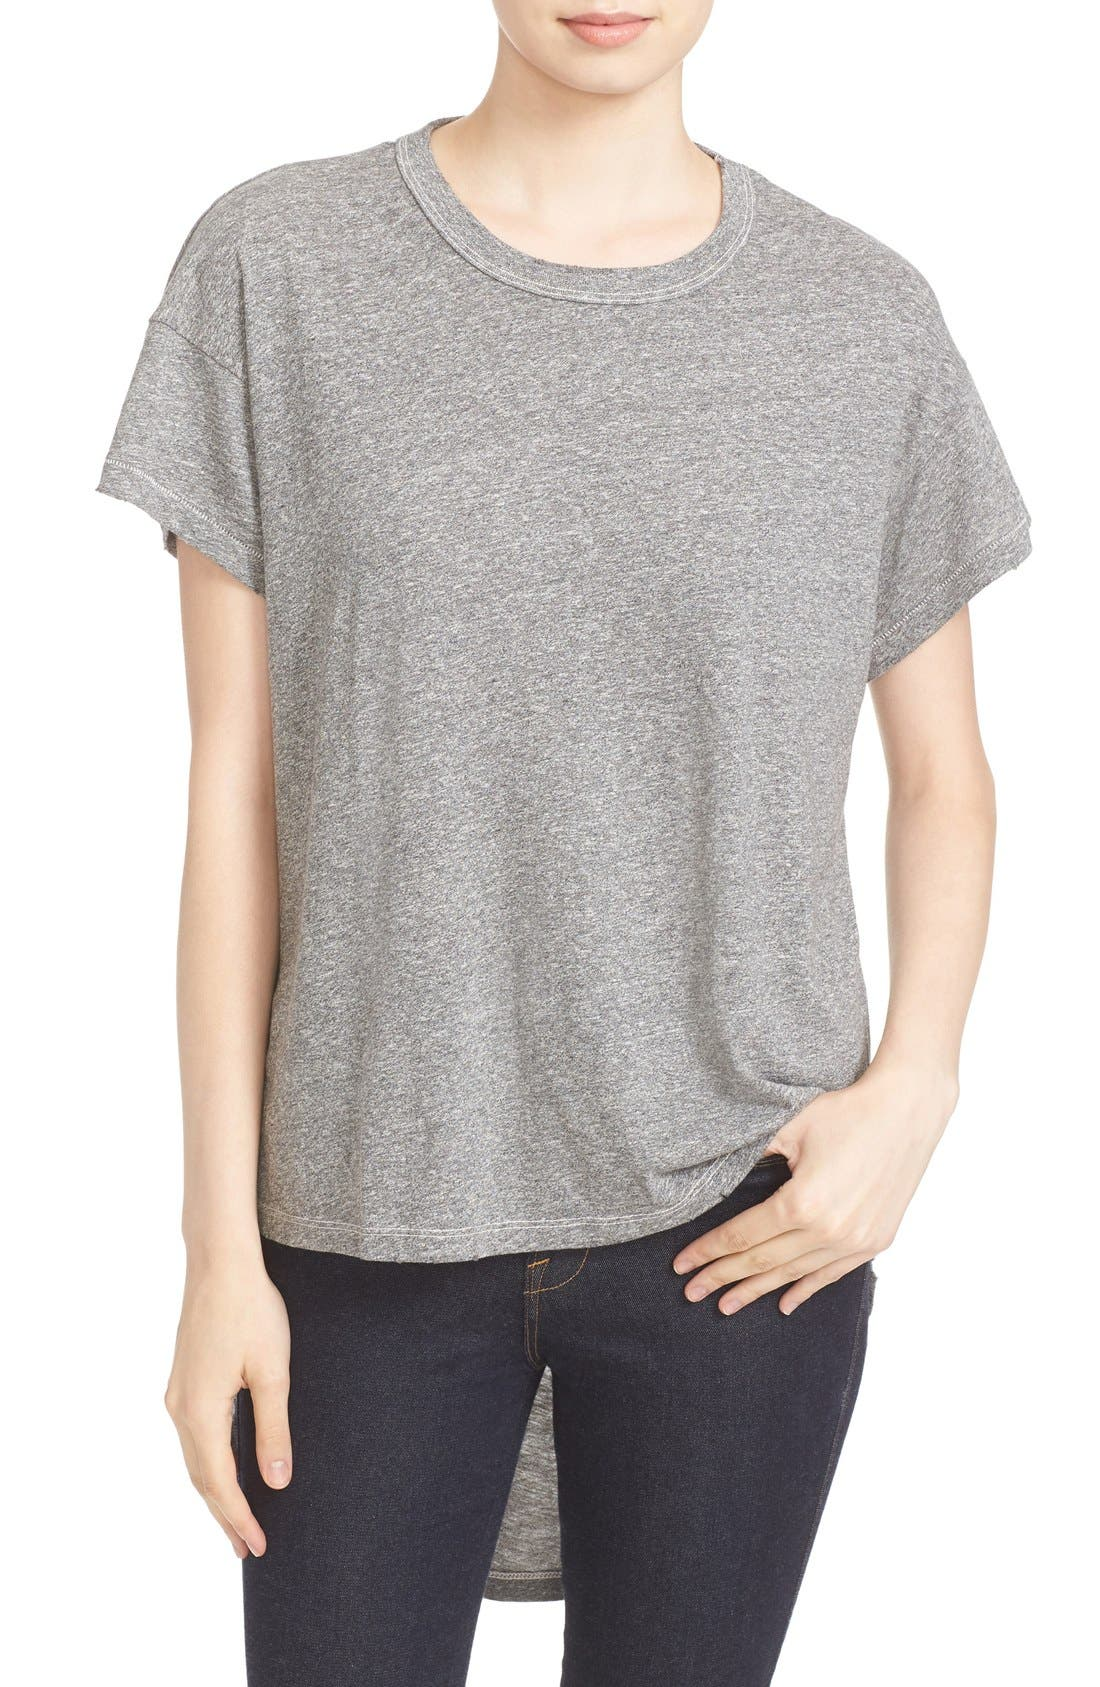 THE GREAT. 'The Shirttail' High/Low Tee